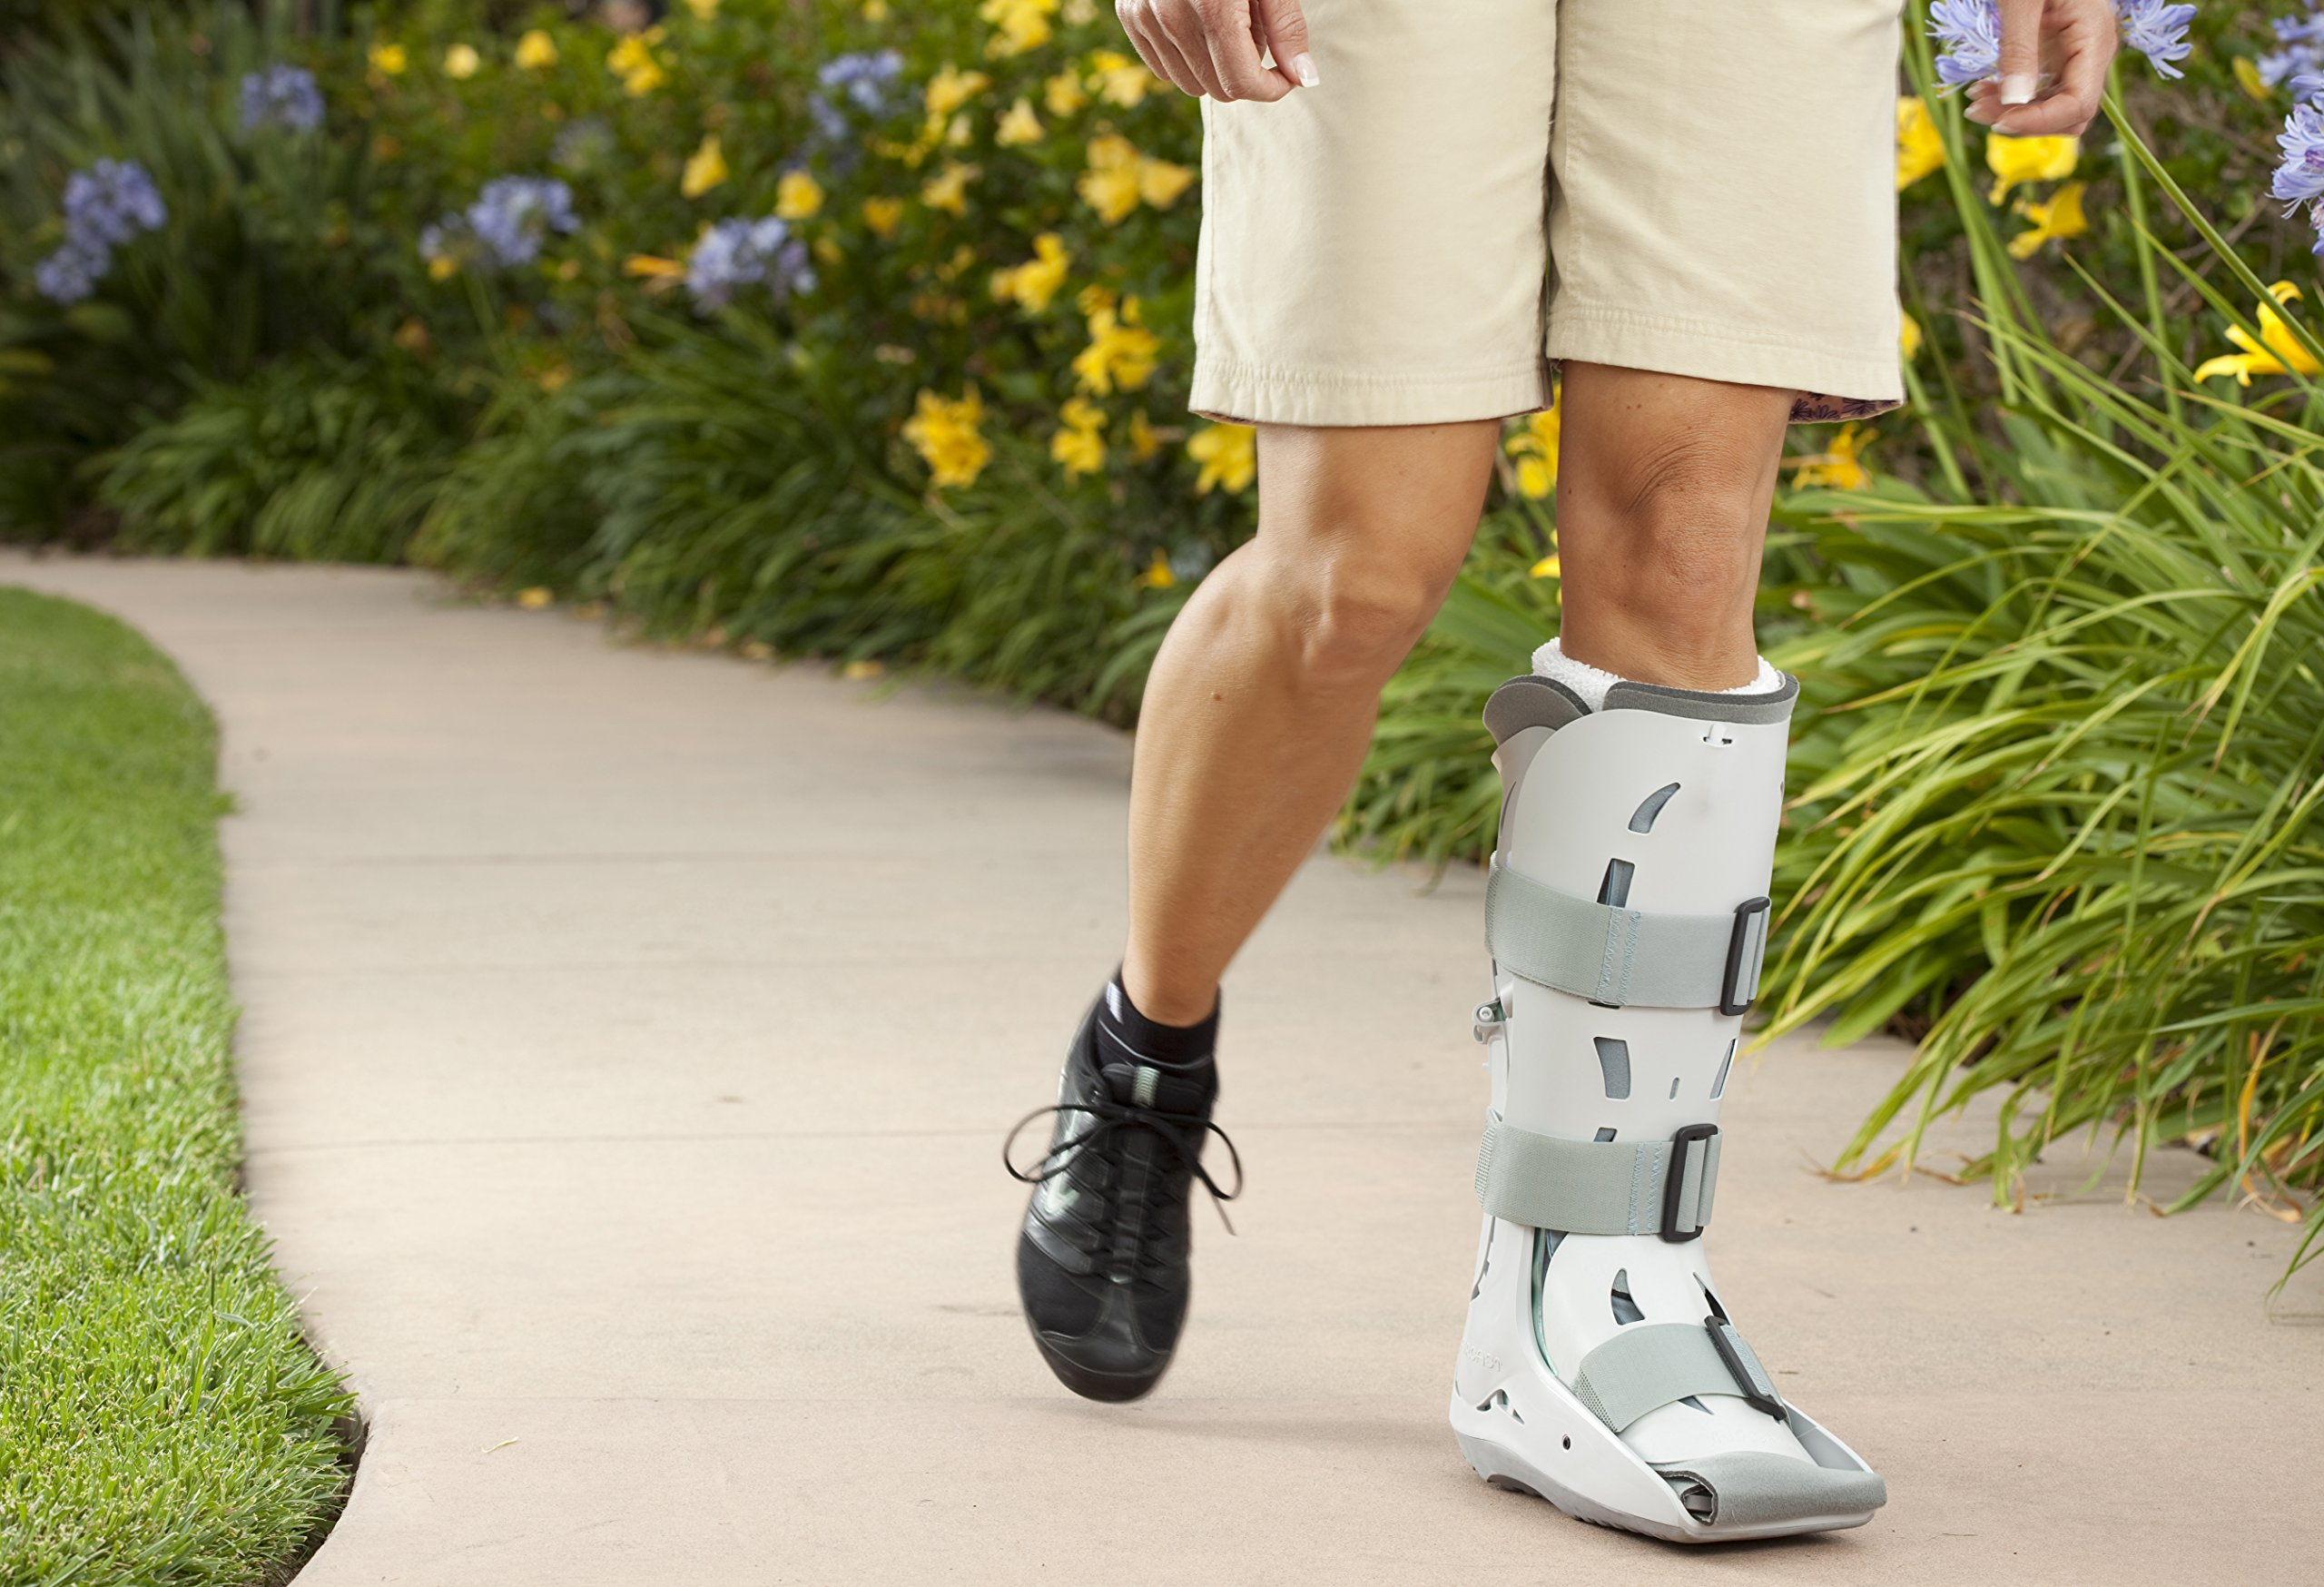 Aircast XP (Extra Pneumatic) Walker Brace / Walking Boot, Large by Aircast (Image #6)